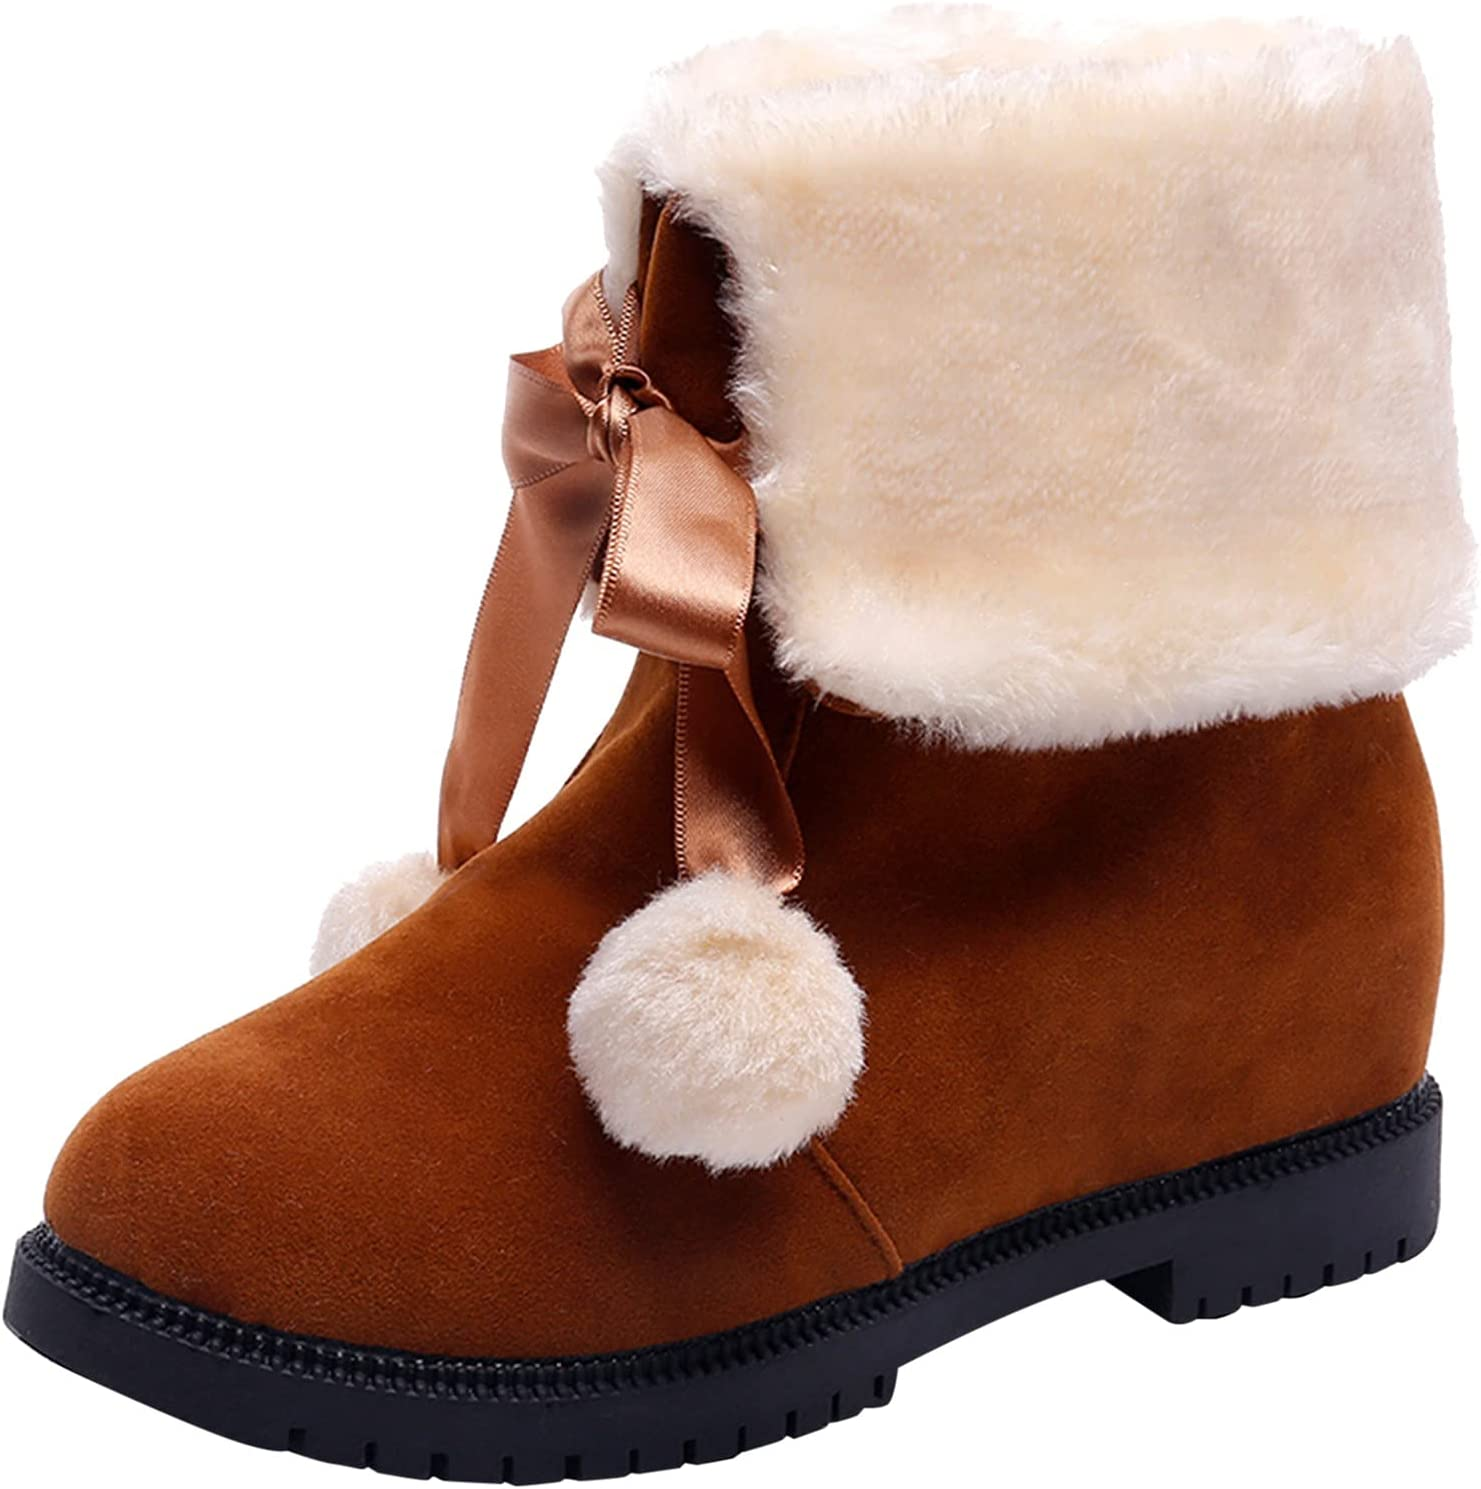 iCODOD Womens Ankle Boots Plush Snow Boots Low Heel Warn Winter Short Boots Cowgirl Boots Christmas Red Boots for Women